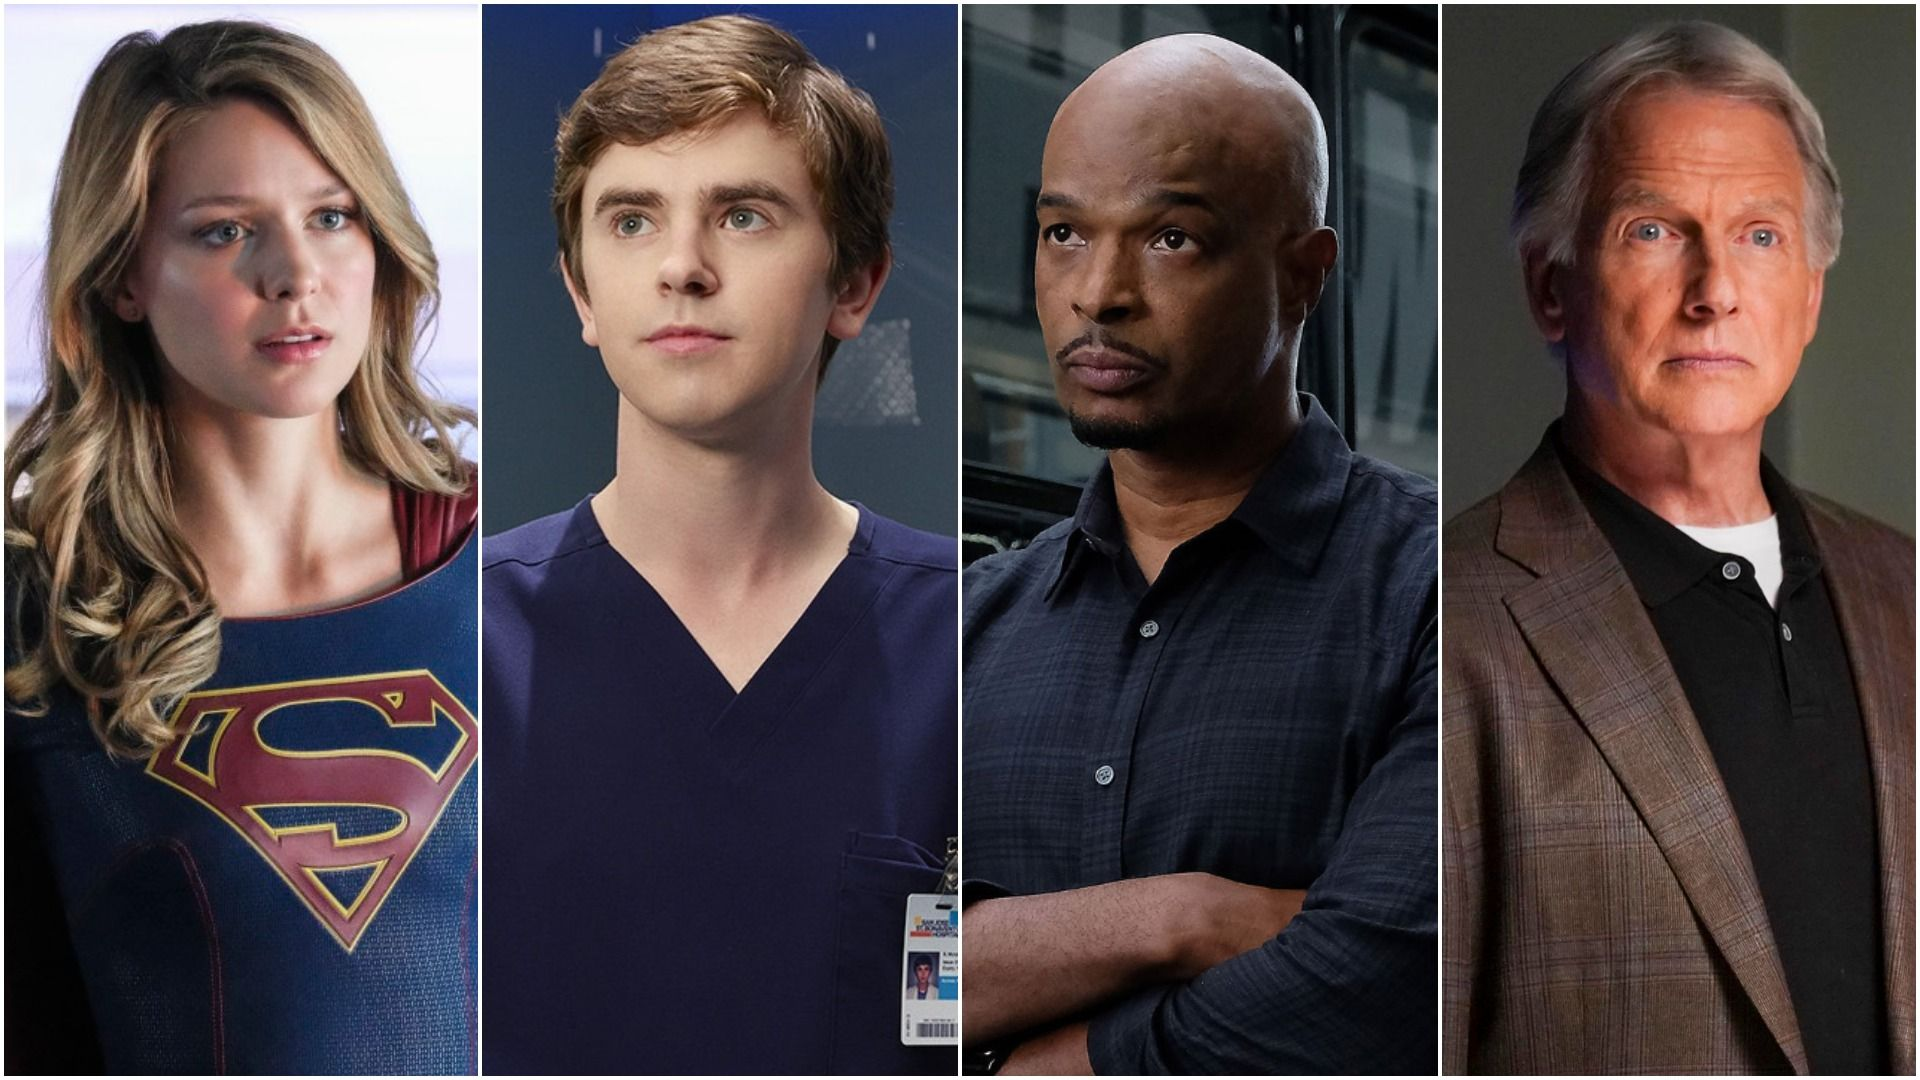 TV shows axed in 2019: What's gone, what's been renewed and what's